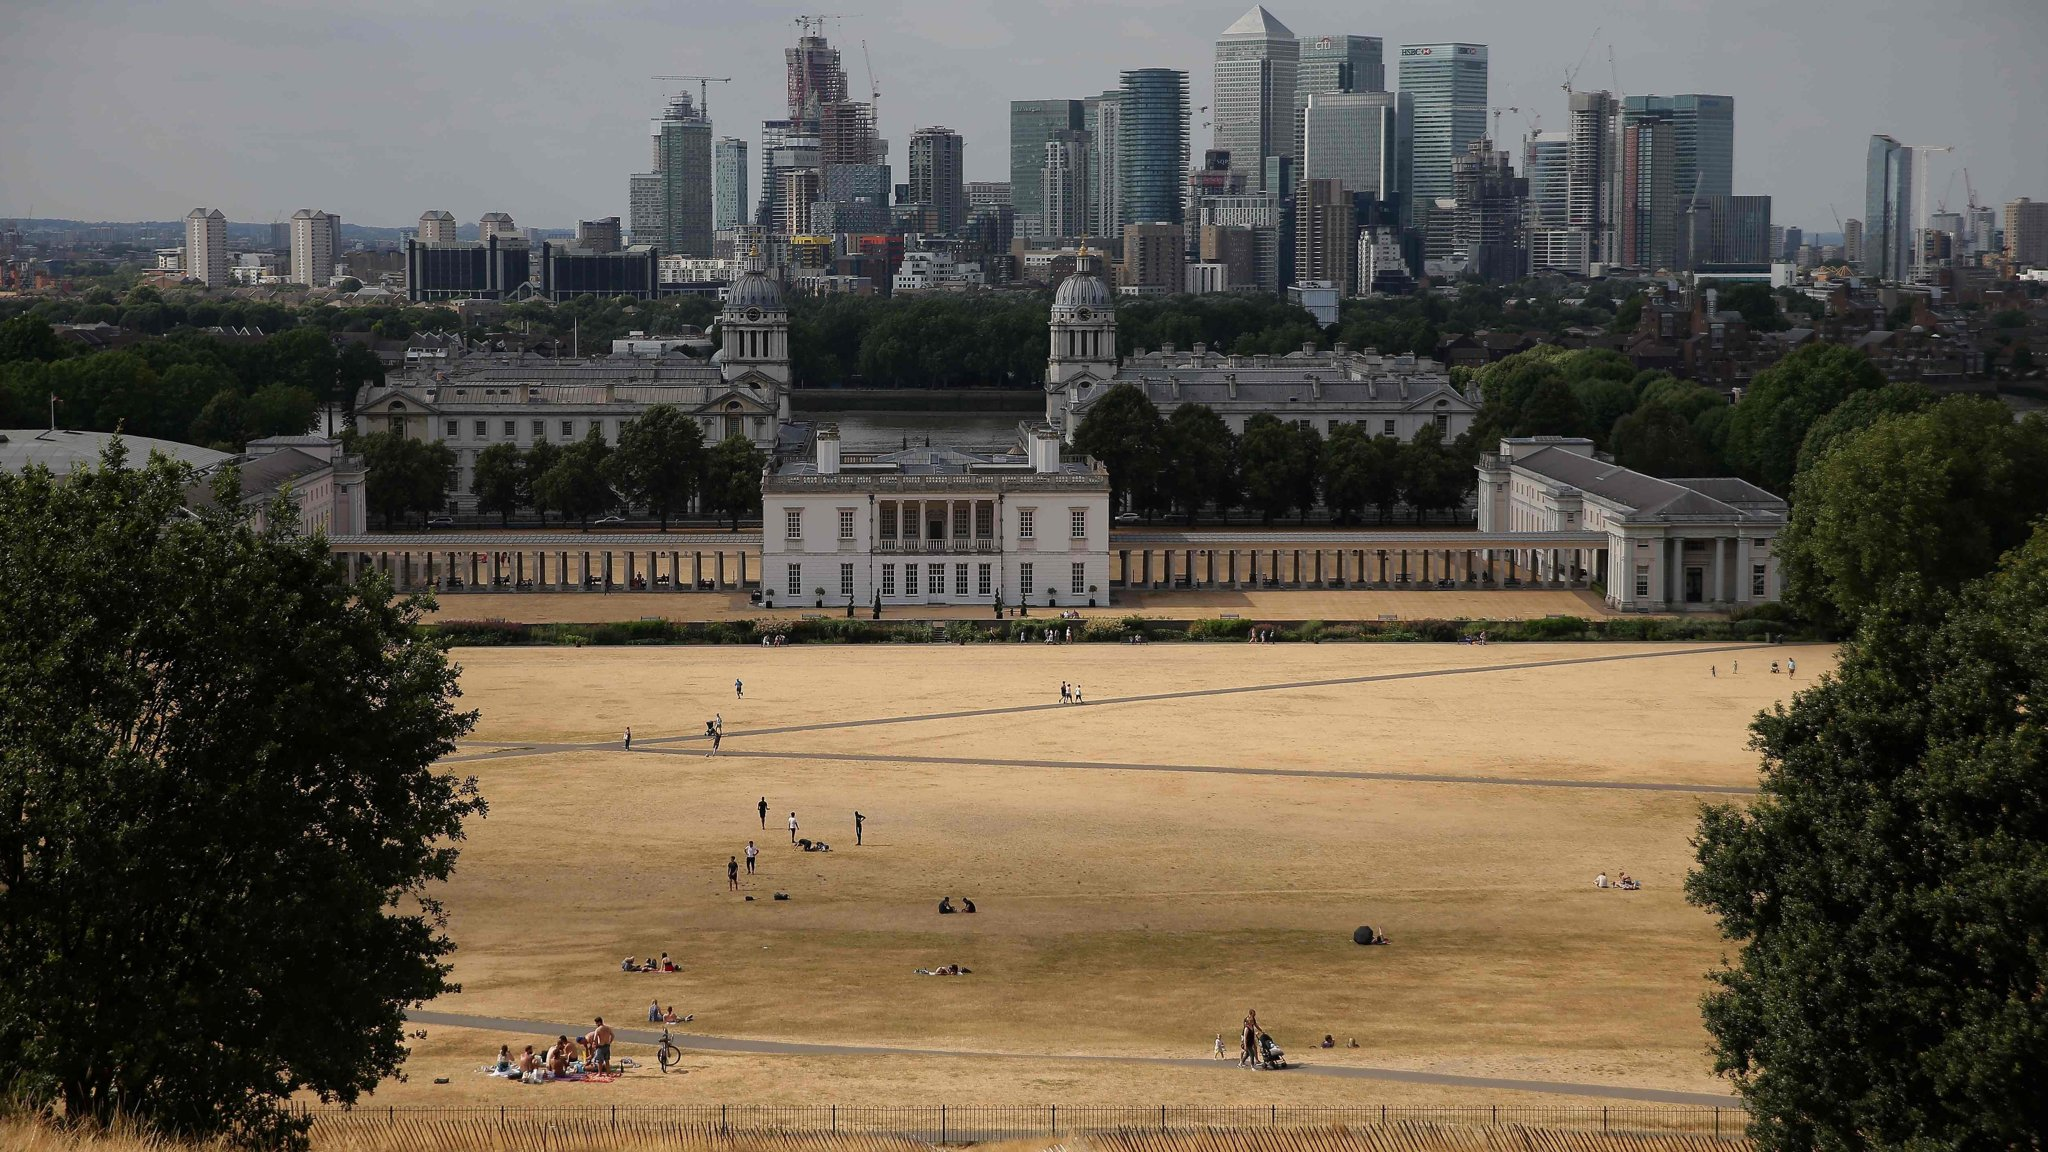 Heat-related deaths projected to triple in the UK by 2050